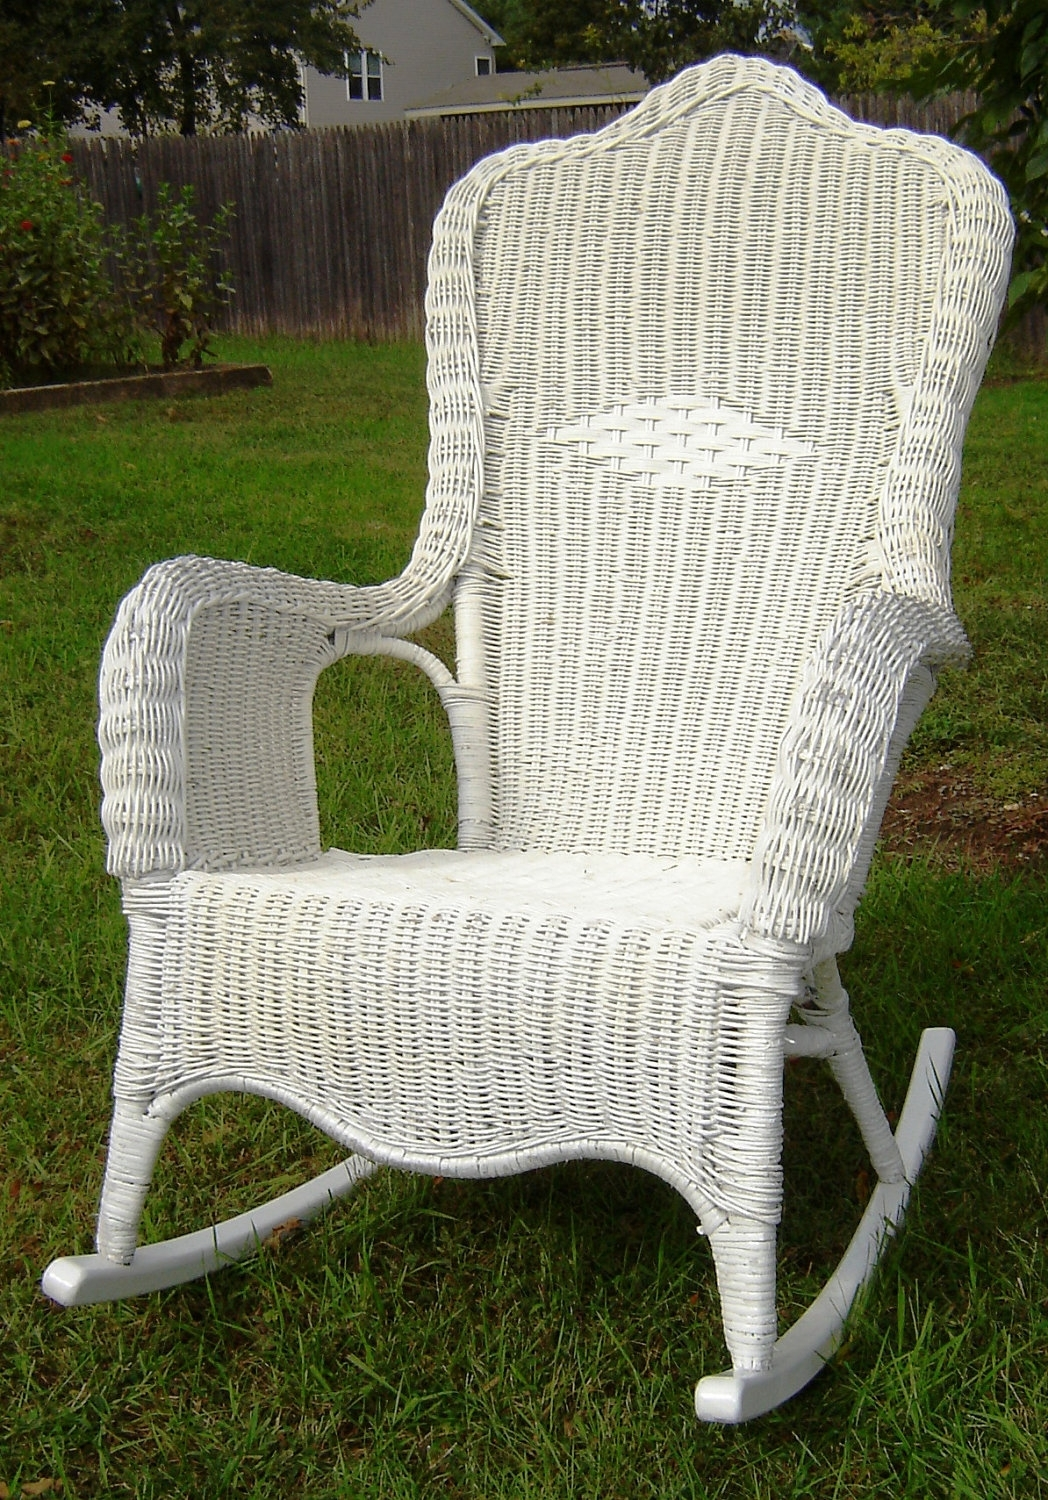 Inspiration about Vintage White Wicker Rocking Chair — Wilson Home Ideas : Choosing A Pertaining To White Wicker Rocking Chair For Nursery (#2 of 15)